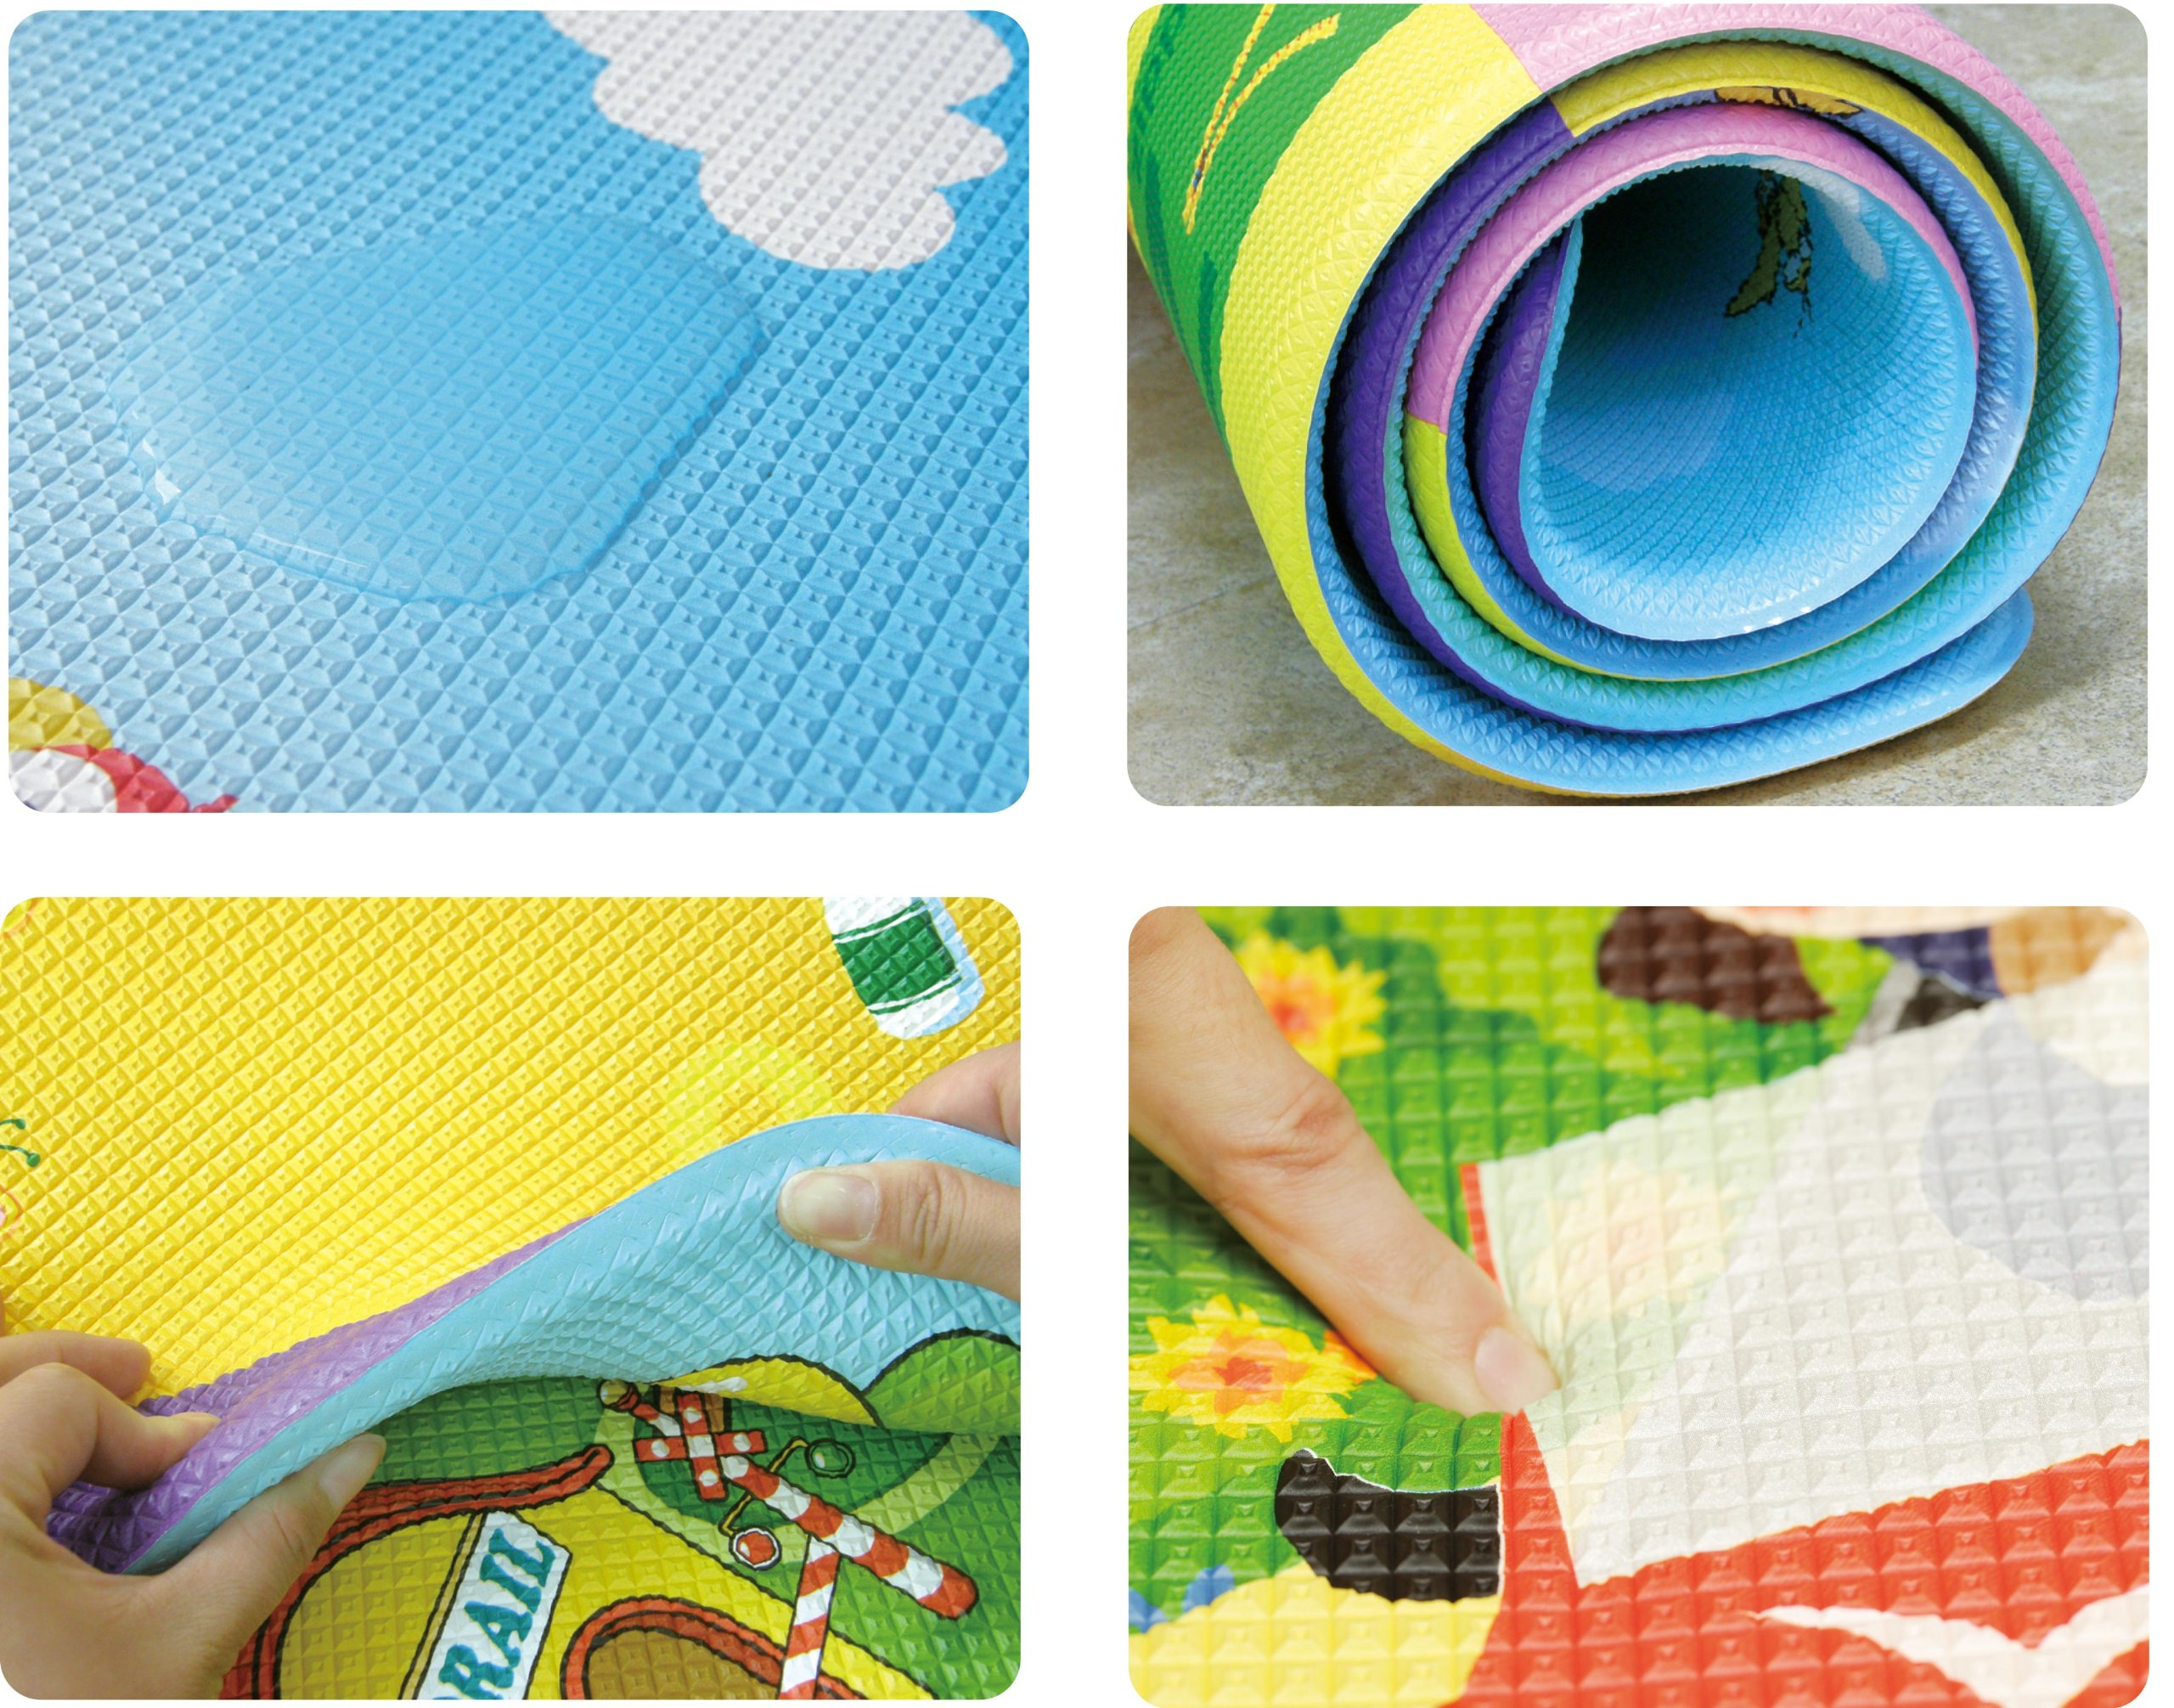 Dwinguler Large Eco-Friendly Kids Play Mats - Designer Collection (FairyLand)